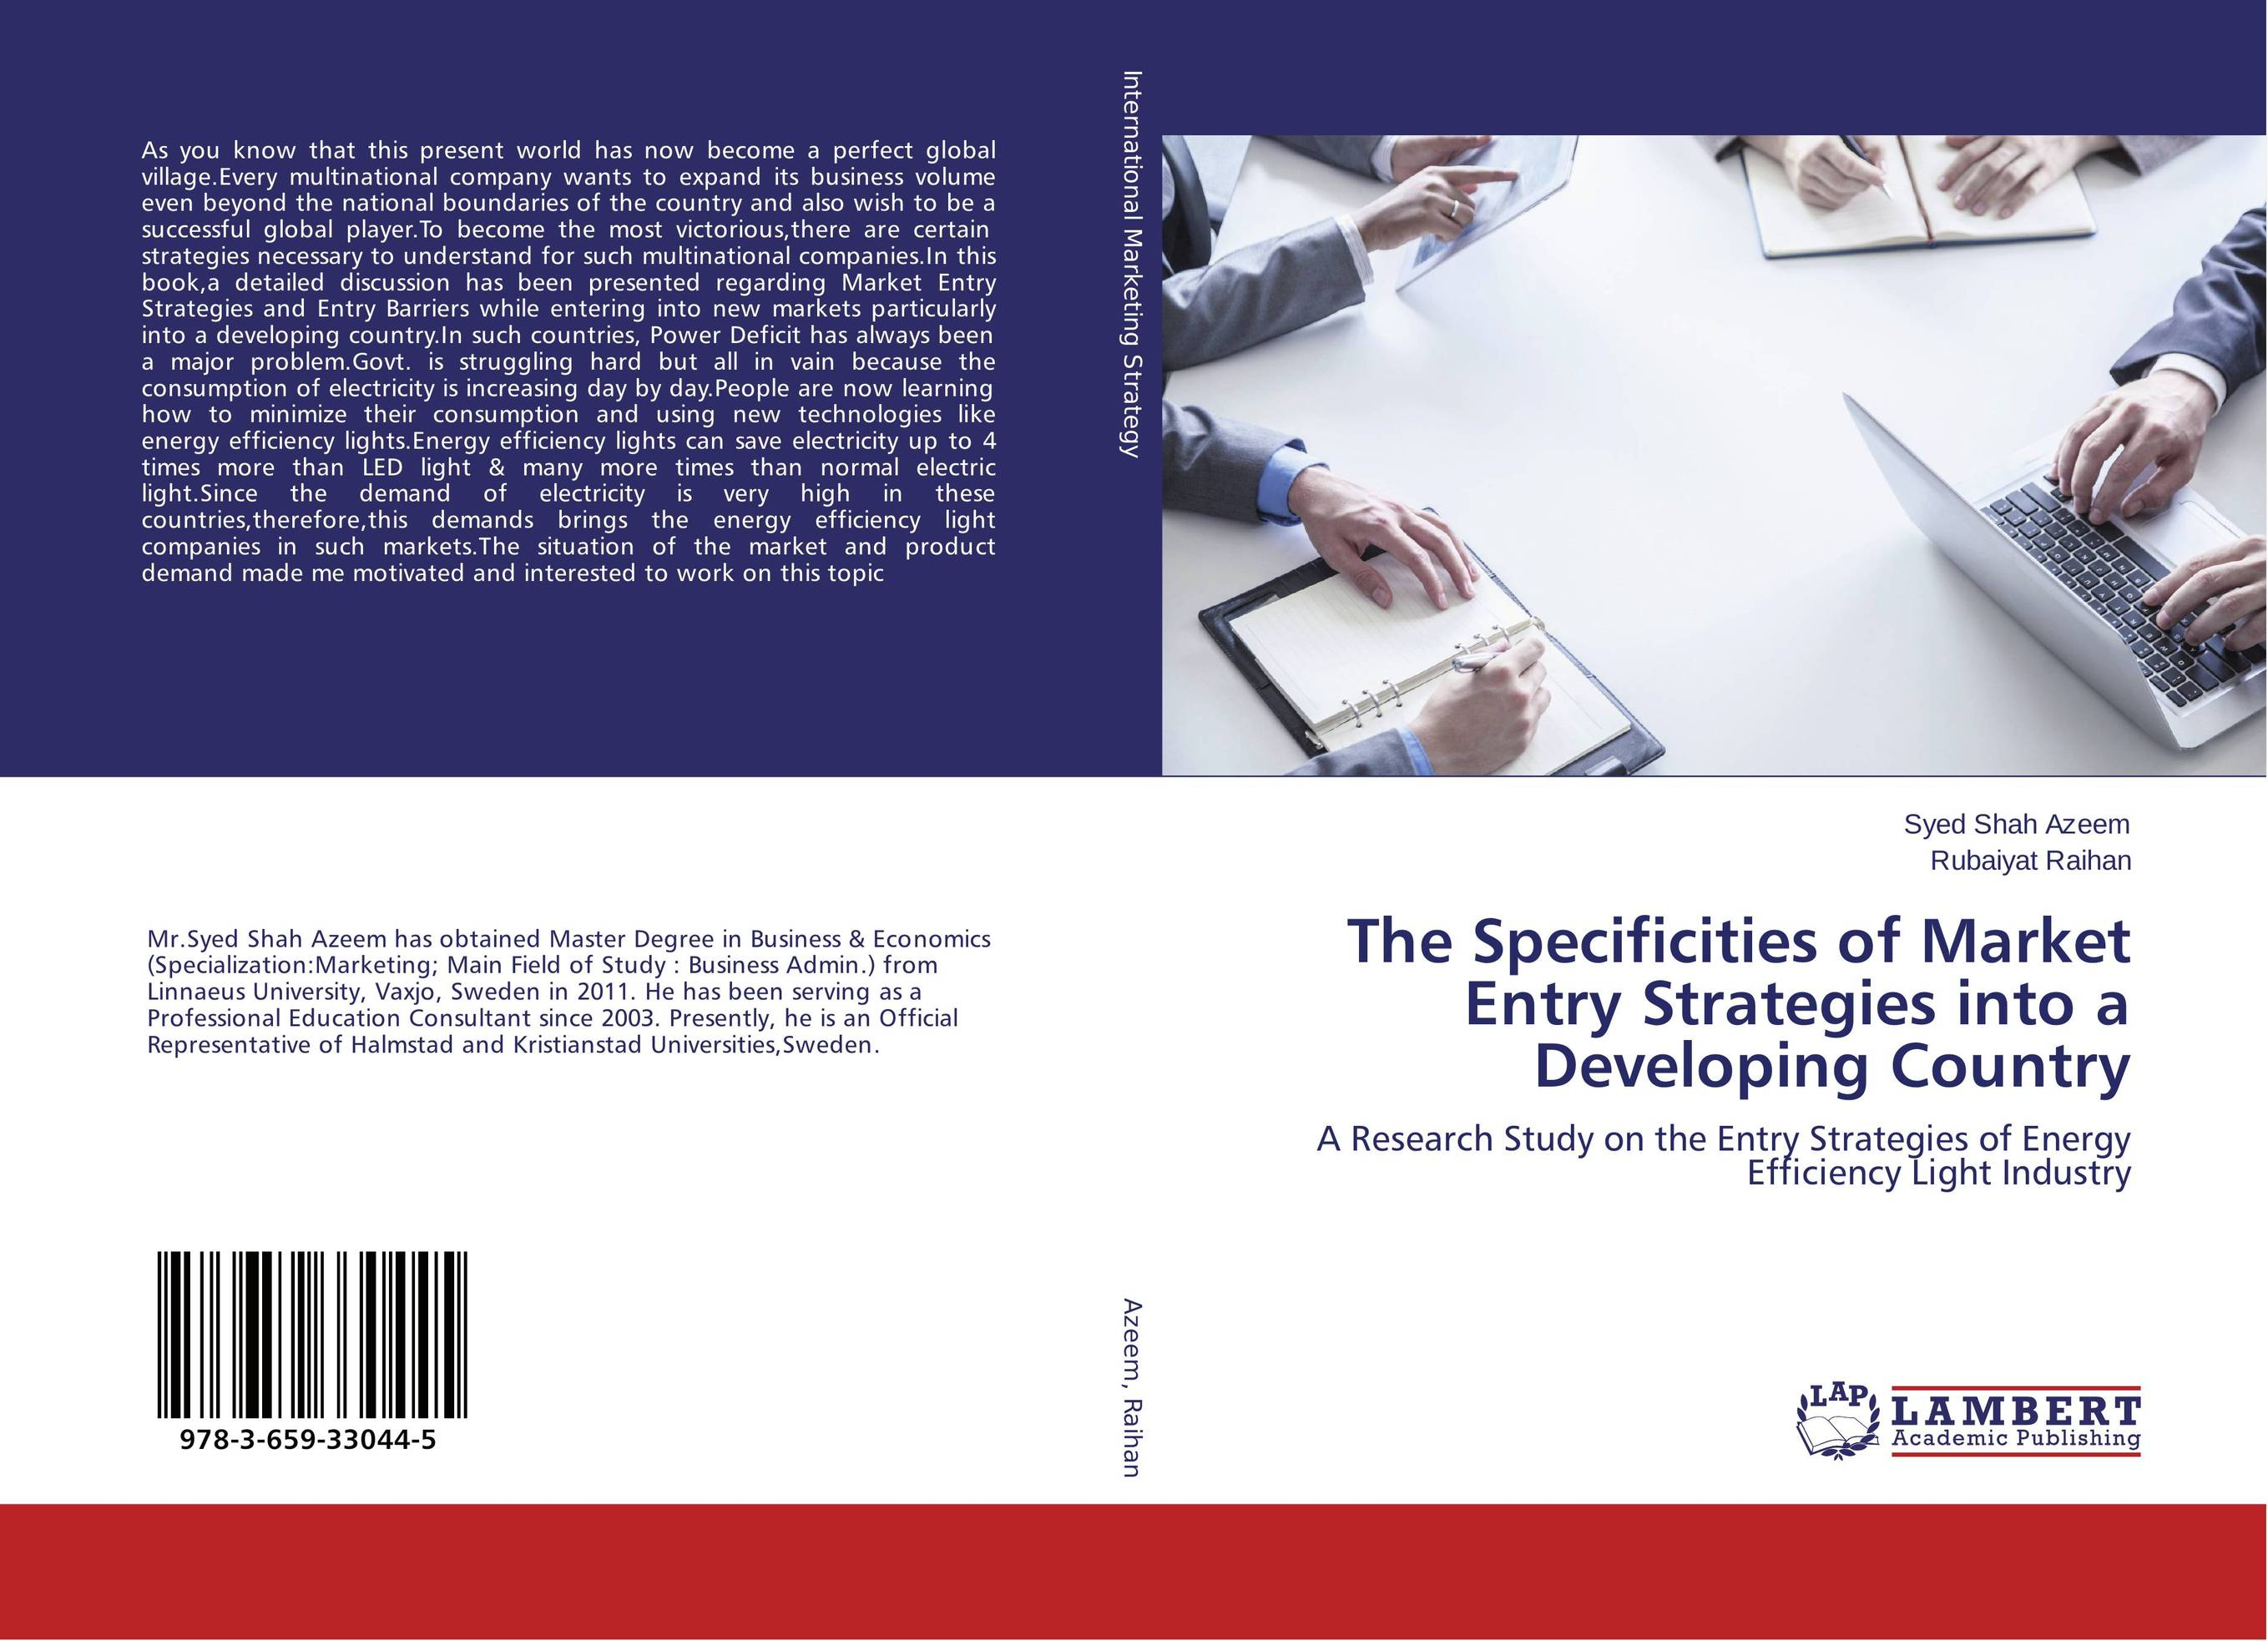 The Specificities of Market Entry Strategies into a Developing Country